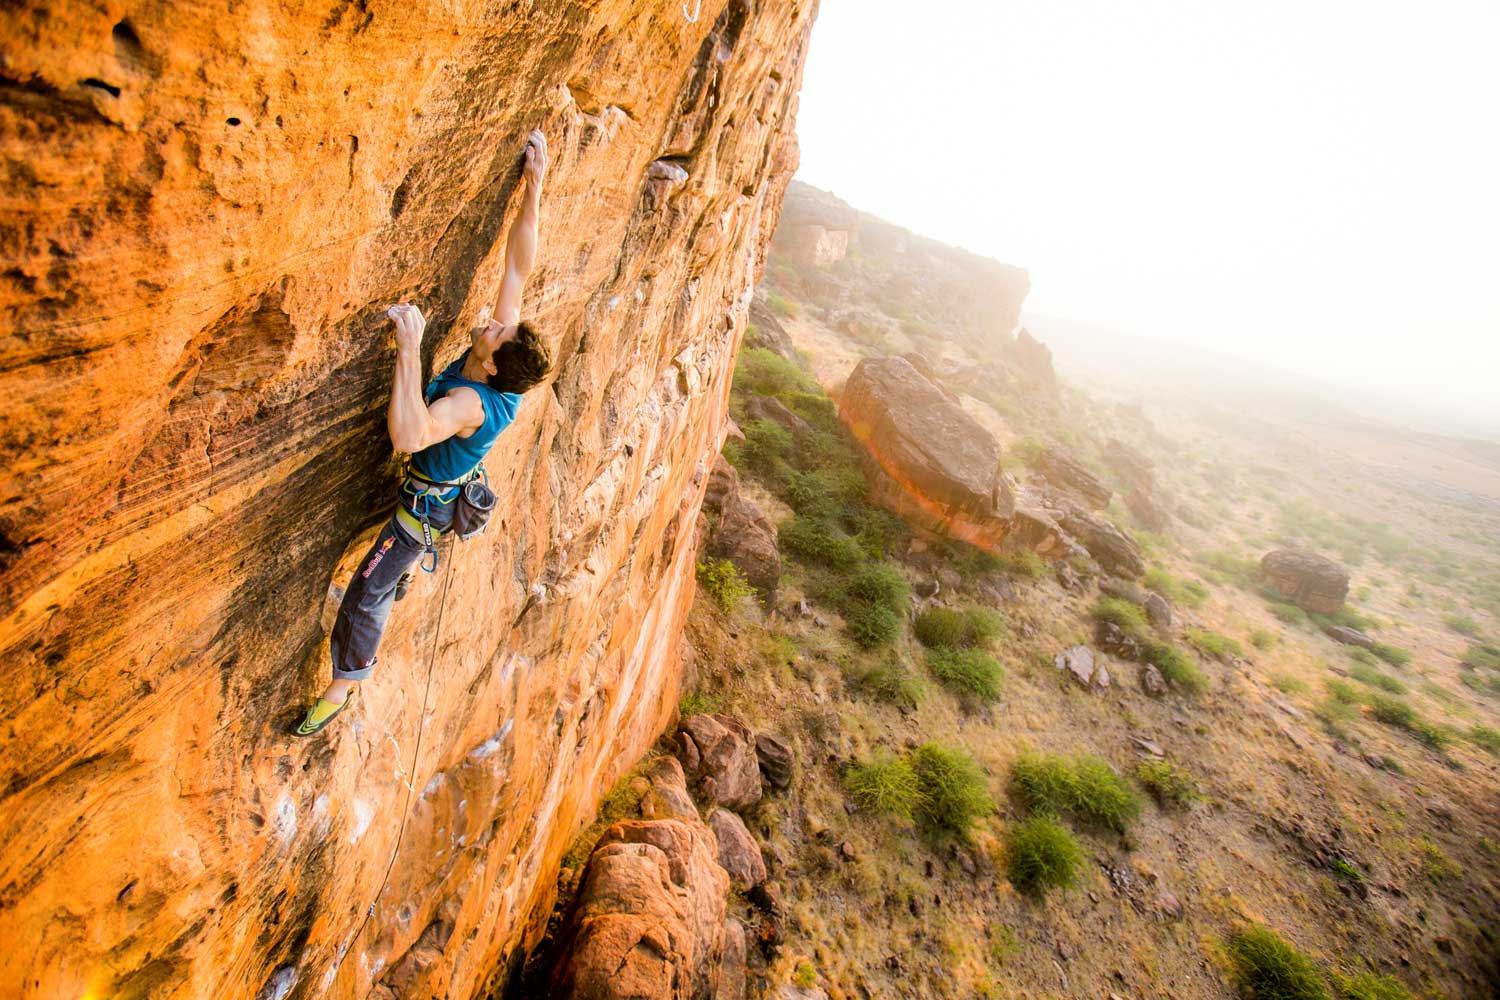 Kilian Fischhuber climbing up the side of a boulder in Badami, India.